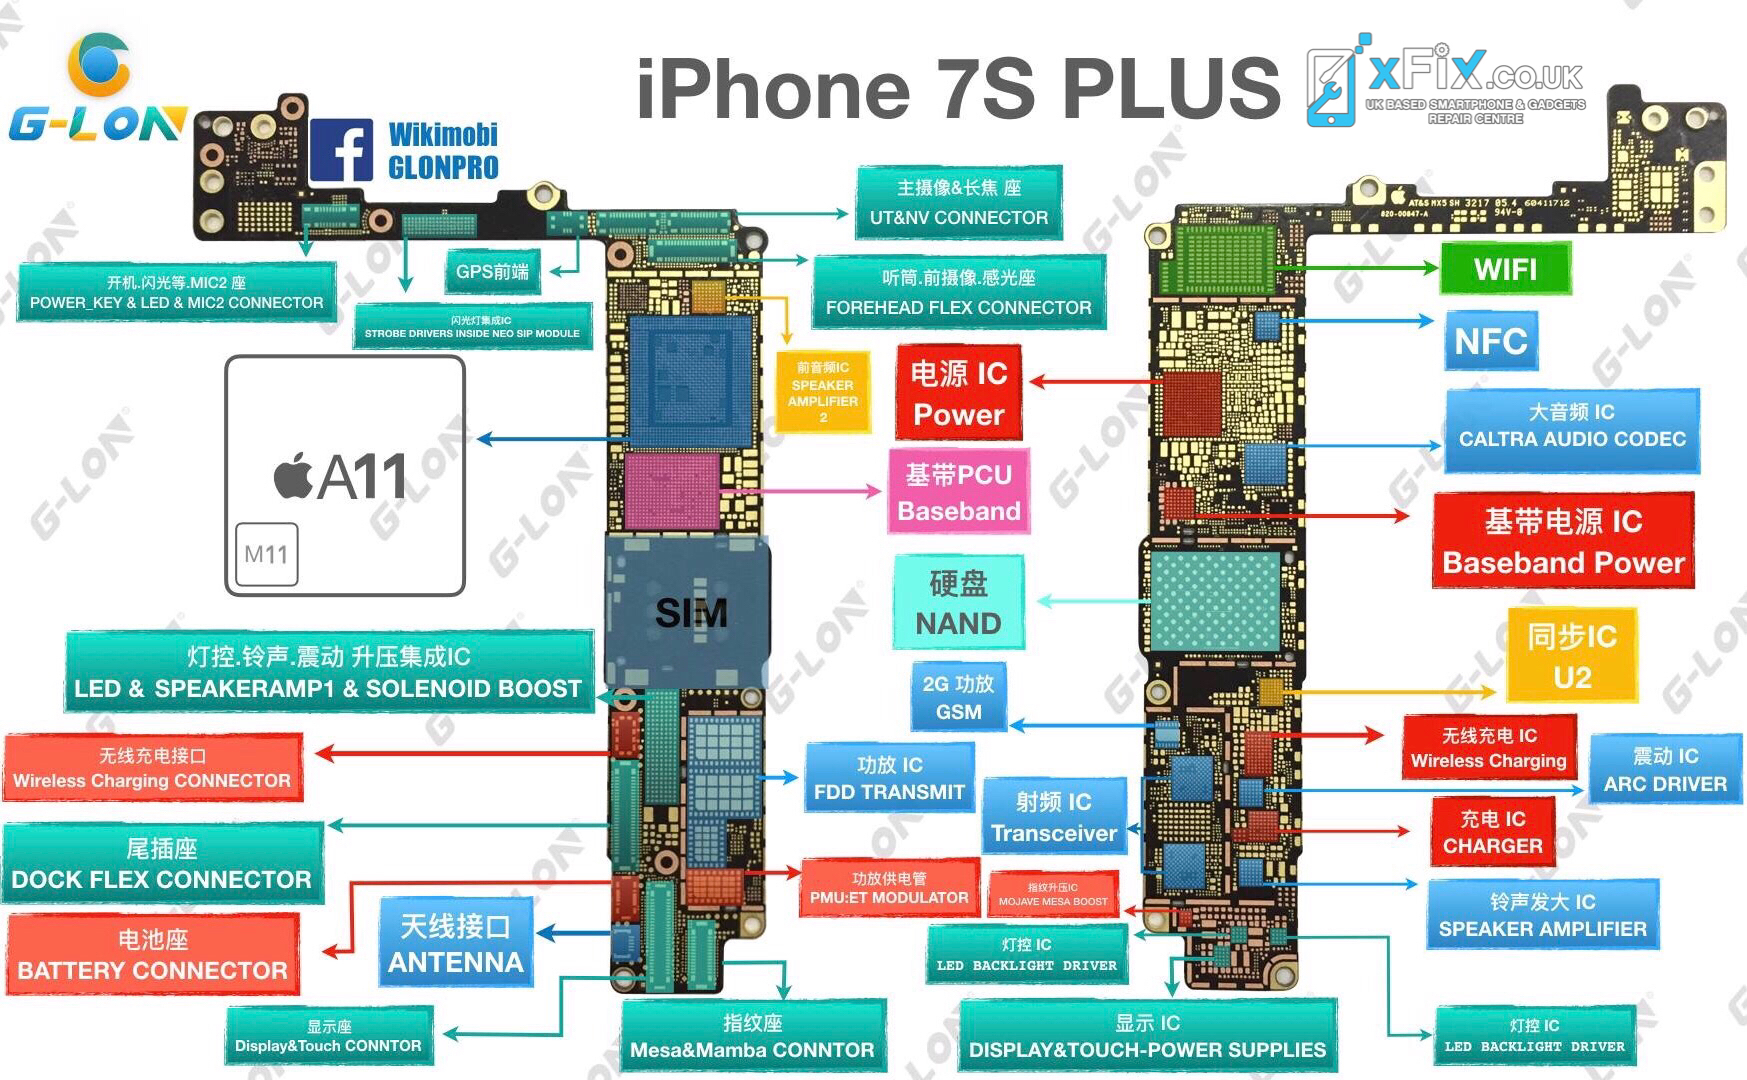 hight resolution of details for iphone 7s plus pcb diagram xfix iphone 4s logic board diagram ipad 2 logic board diagram